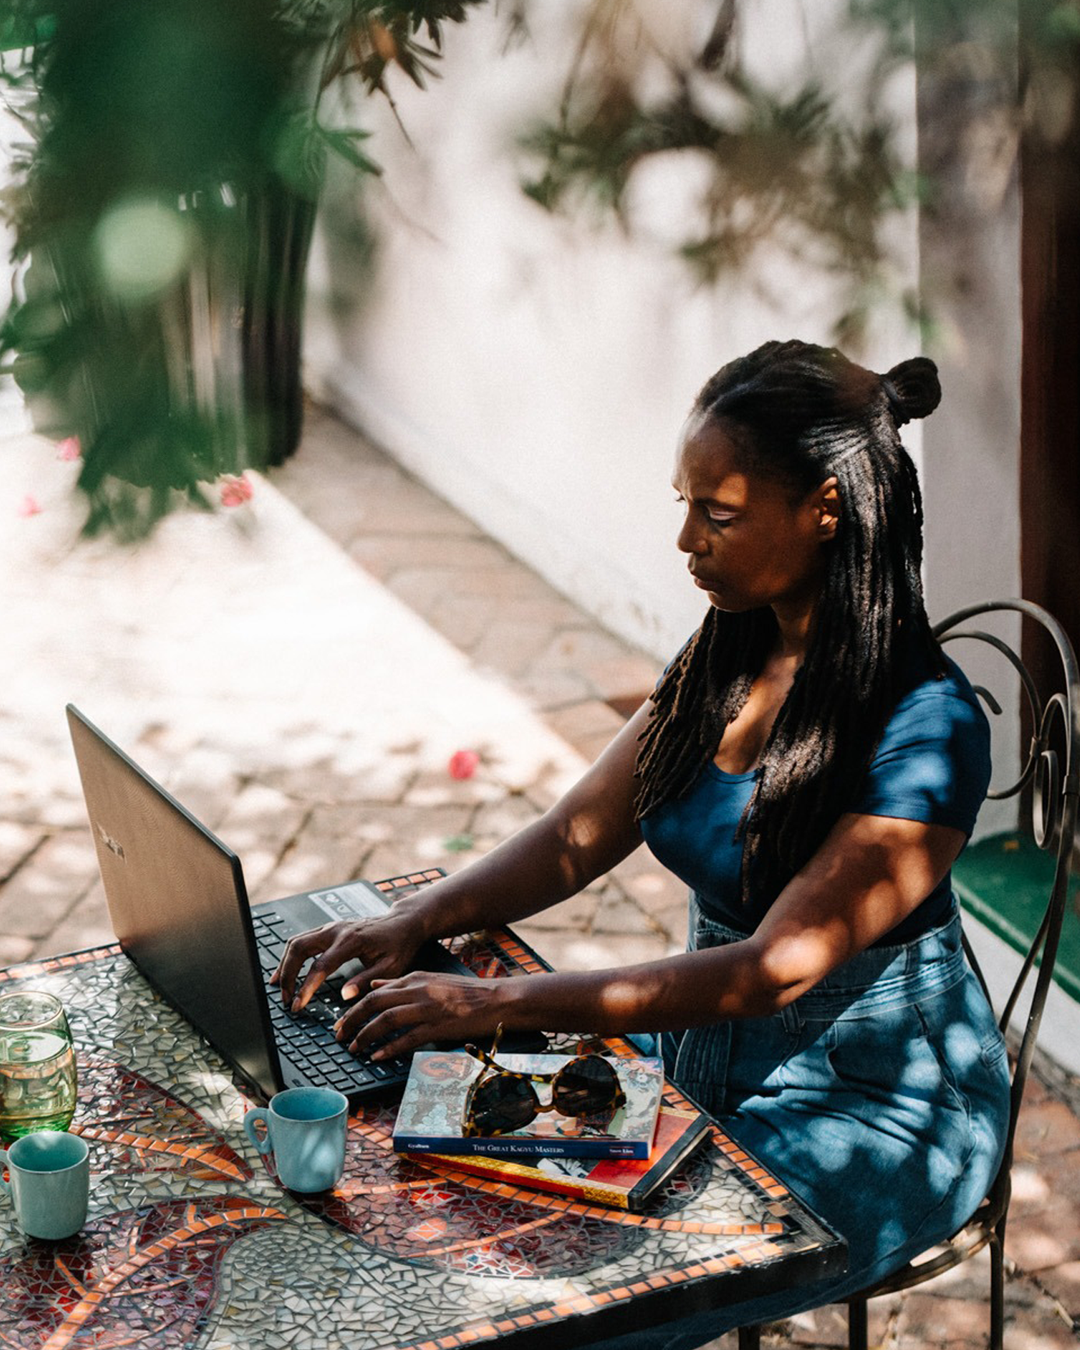 A woman working on her laptop in the garden at Villa Viva.